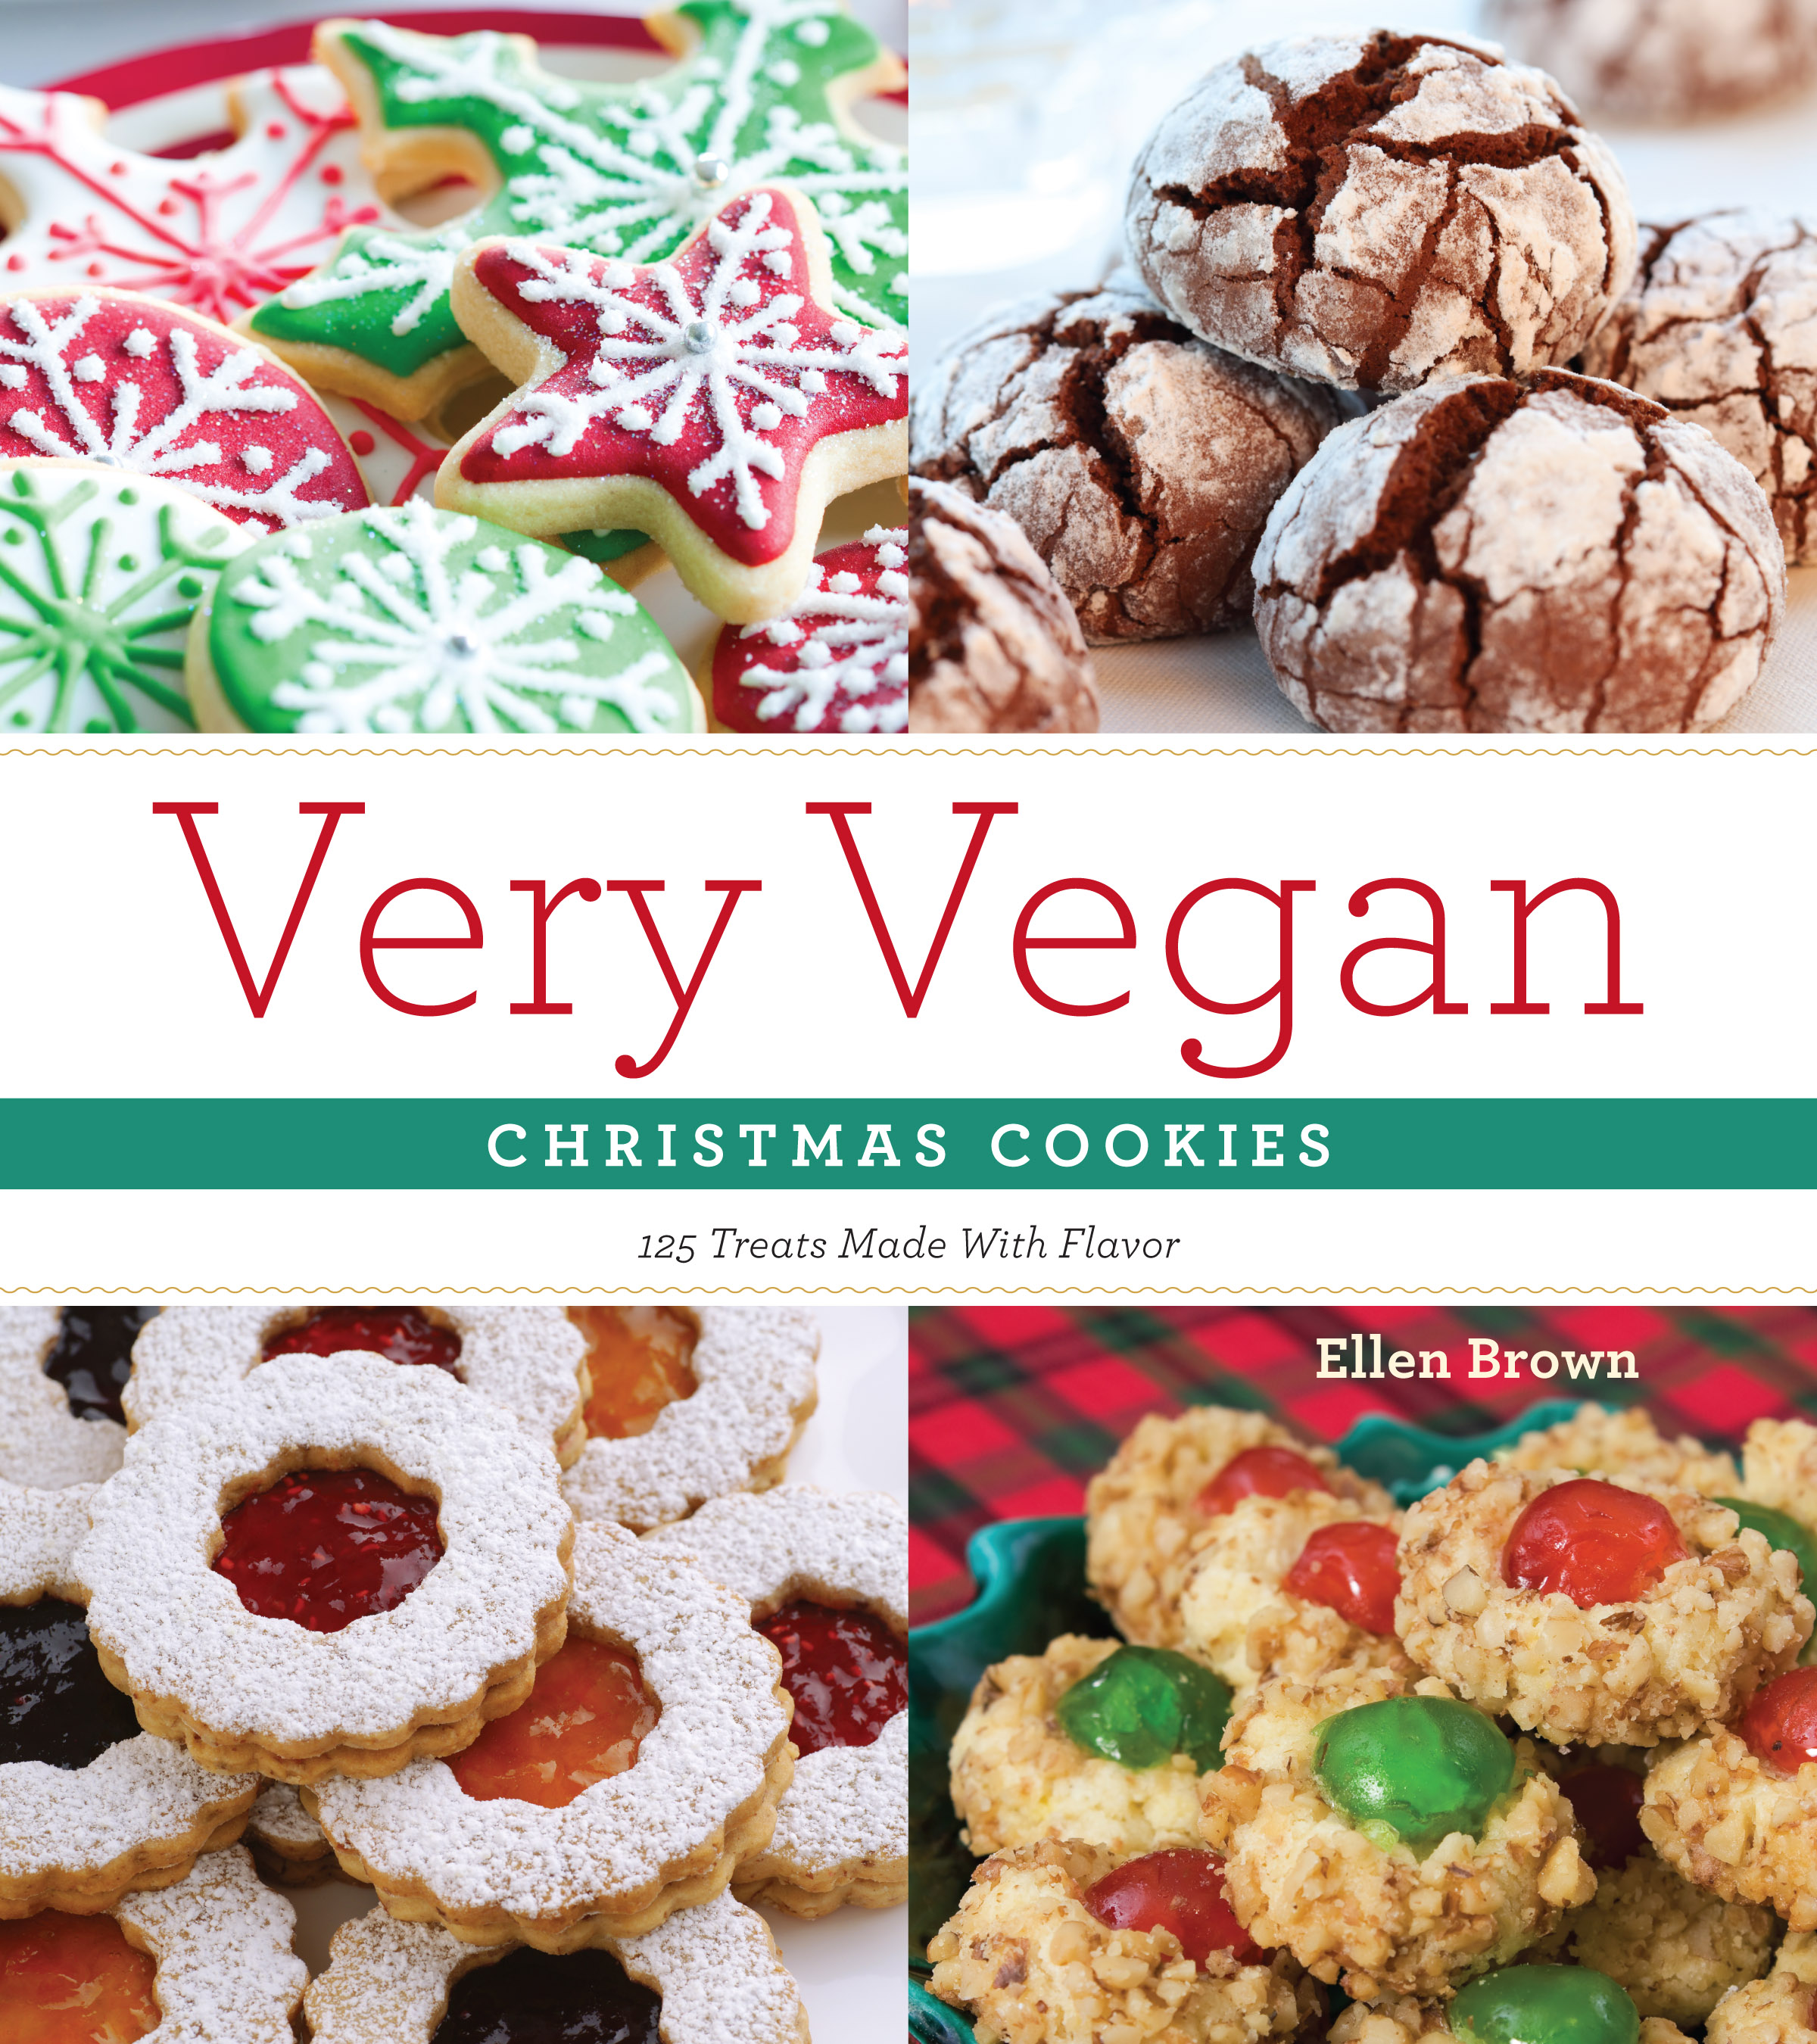 Very Vegan Christmas Cookies 9781604332919 Hr